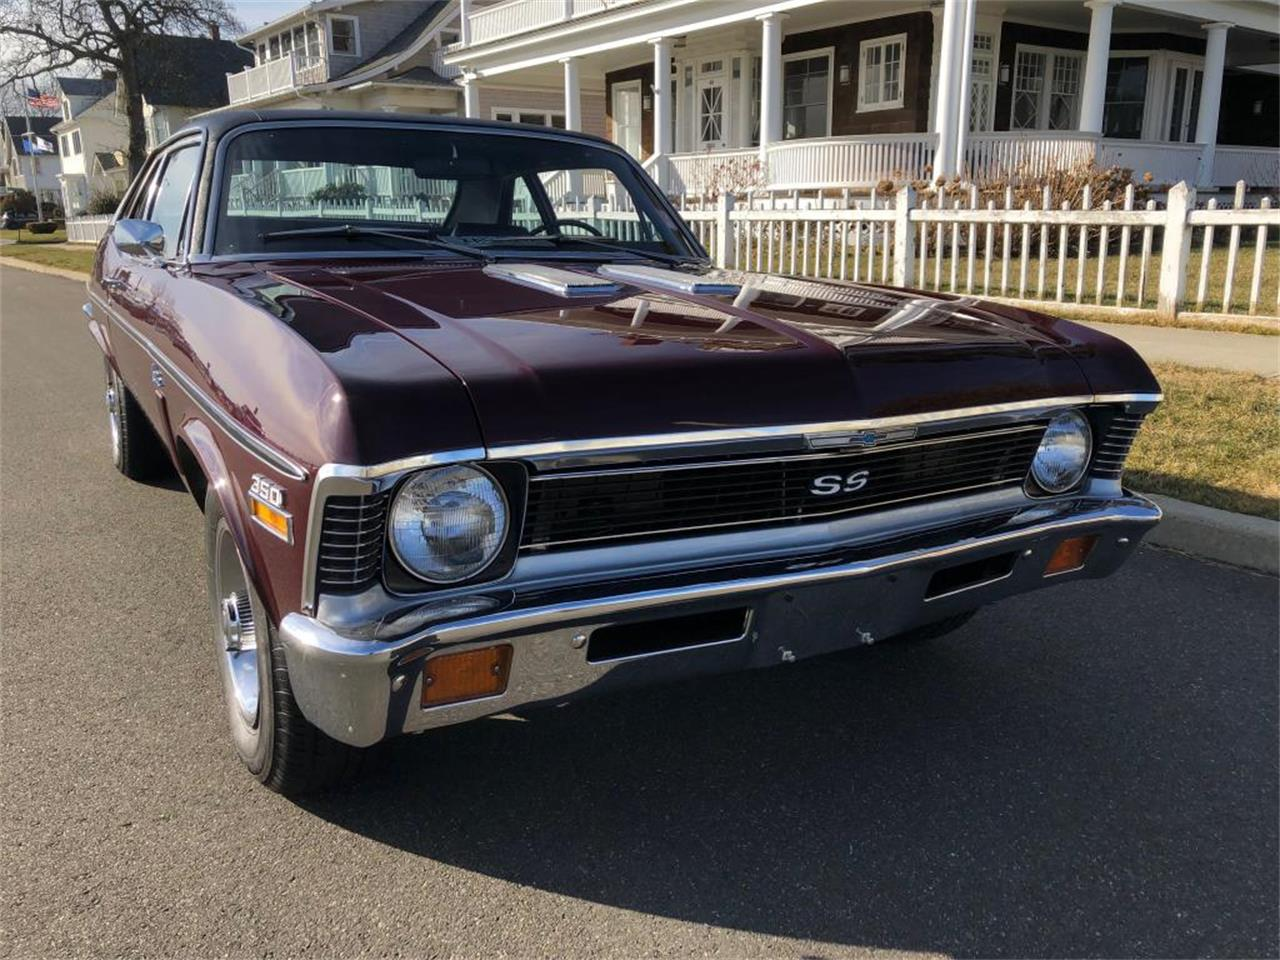 1971 Chevrolet Nova for sale in Milford City, CT – photo 3